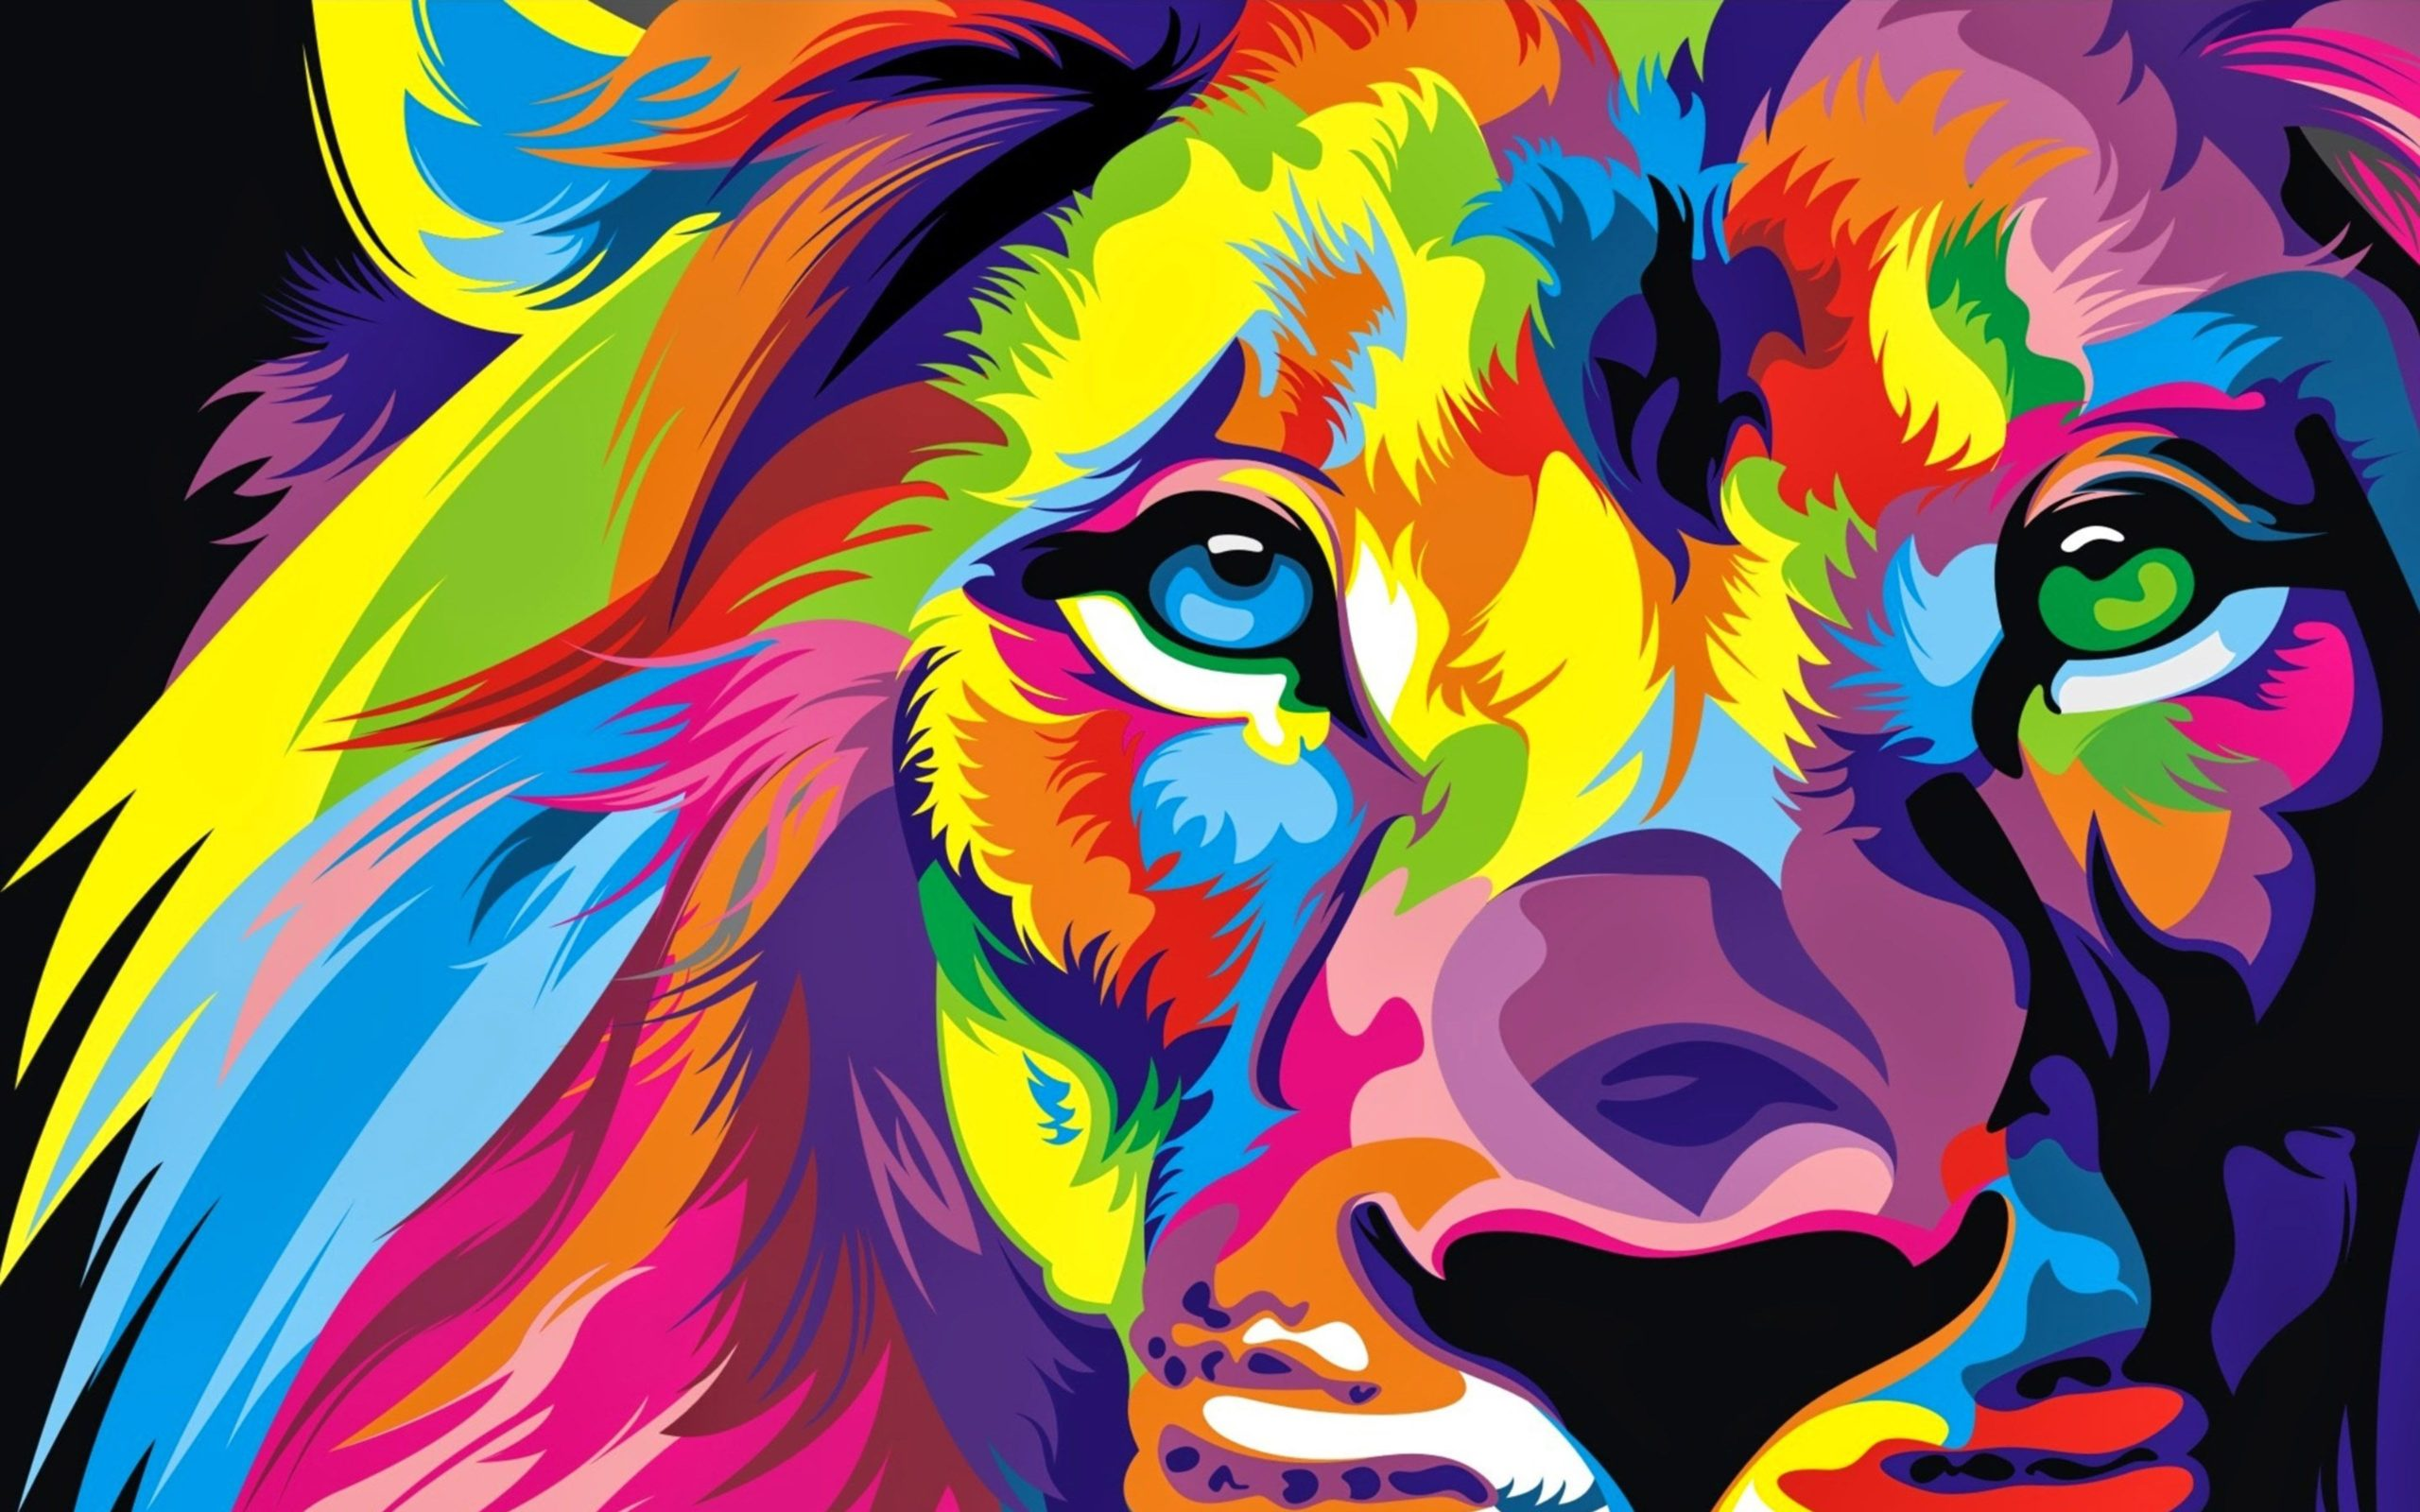 lion hd wallpaper for iphone